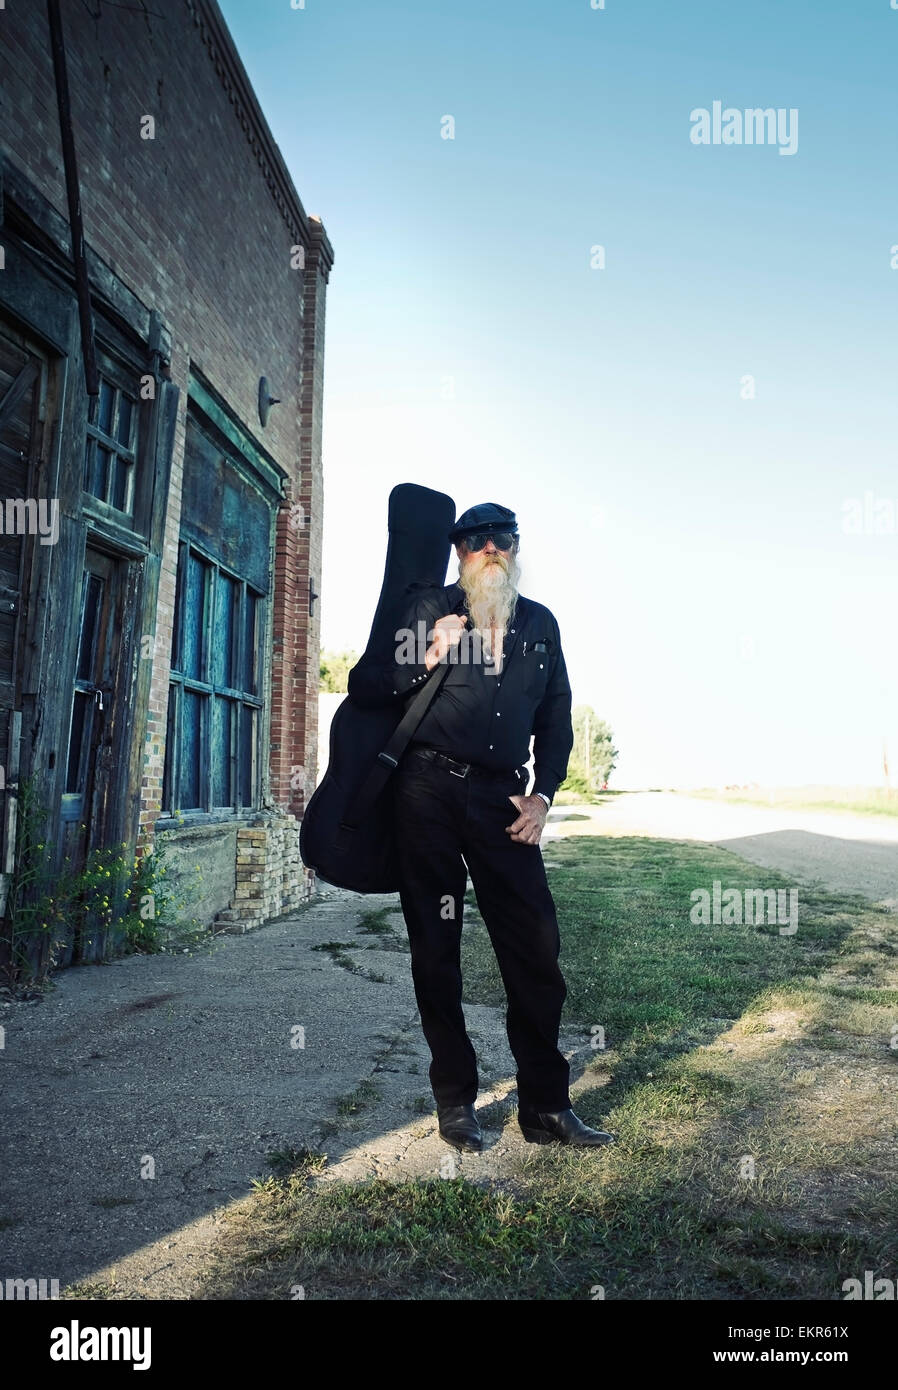 A man carrying a guitar. - Stock Image